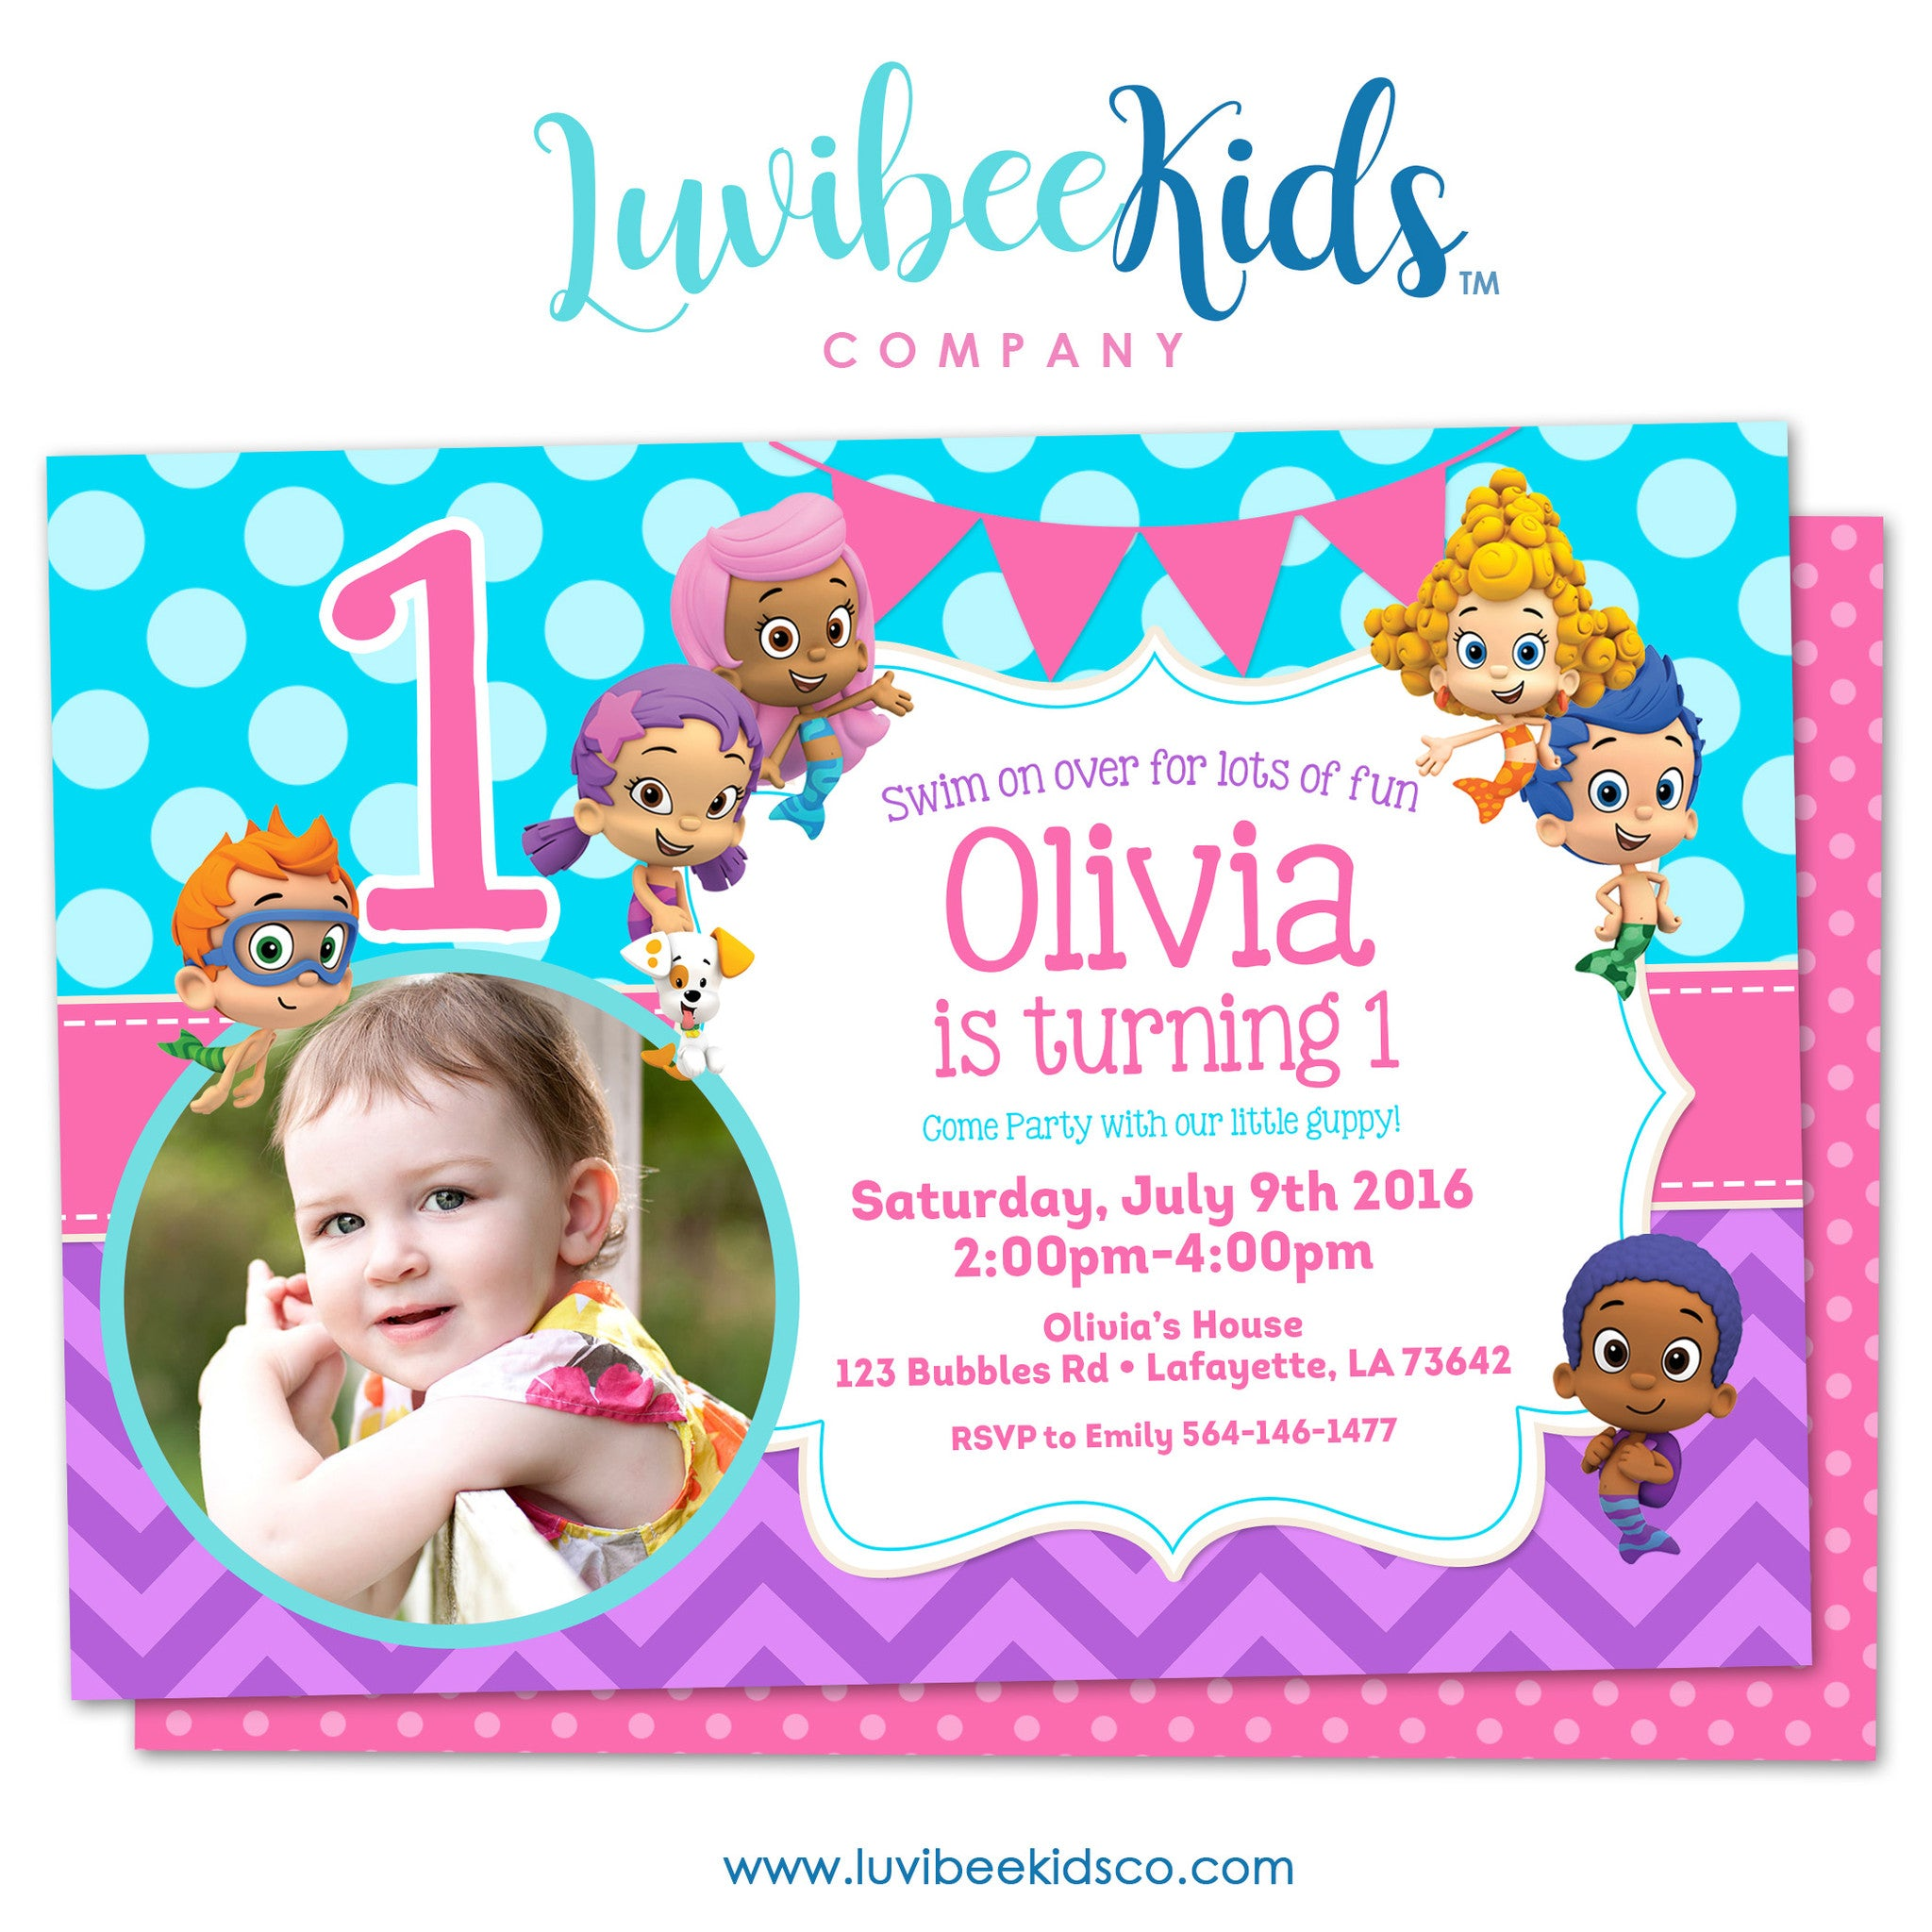 Bubble Guppies - Birthday Invitation - Girl's Style | Blue & Purple with Photo | 001 - LuvibeeKidsCo